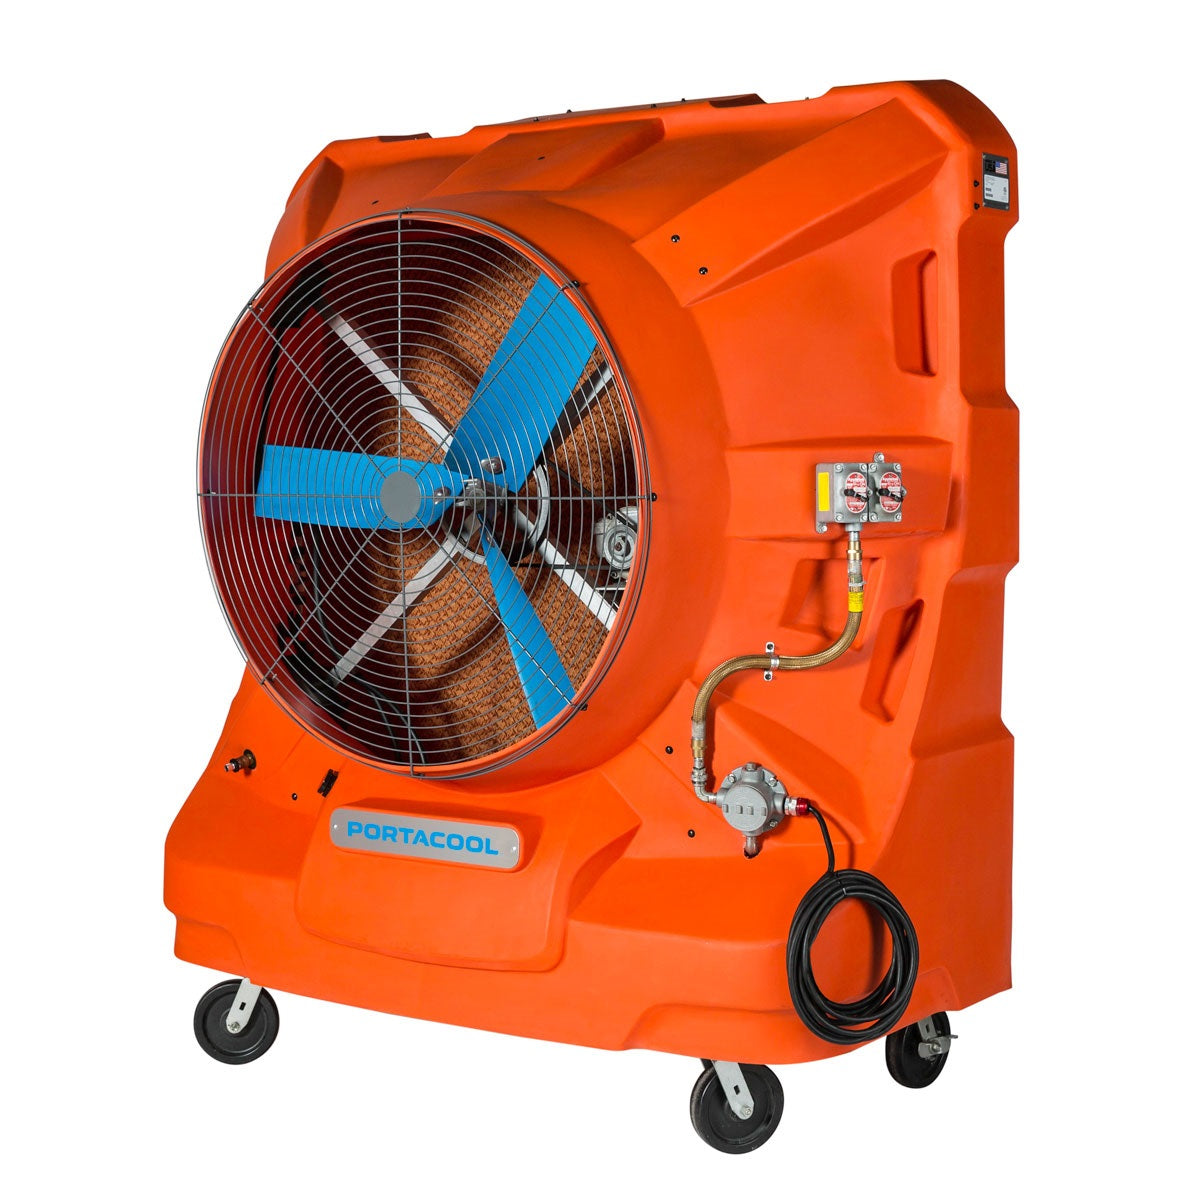 explosion-proof-fans-and-blowers-explosion-proof-evaporative-cooler-fans.jpg